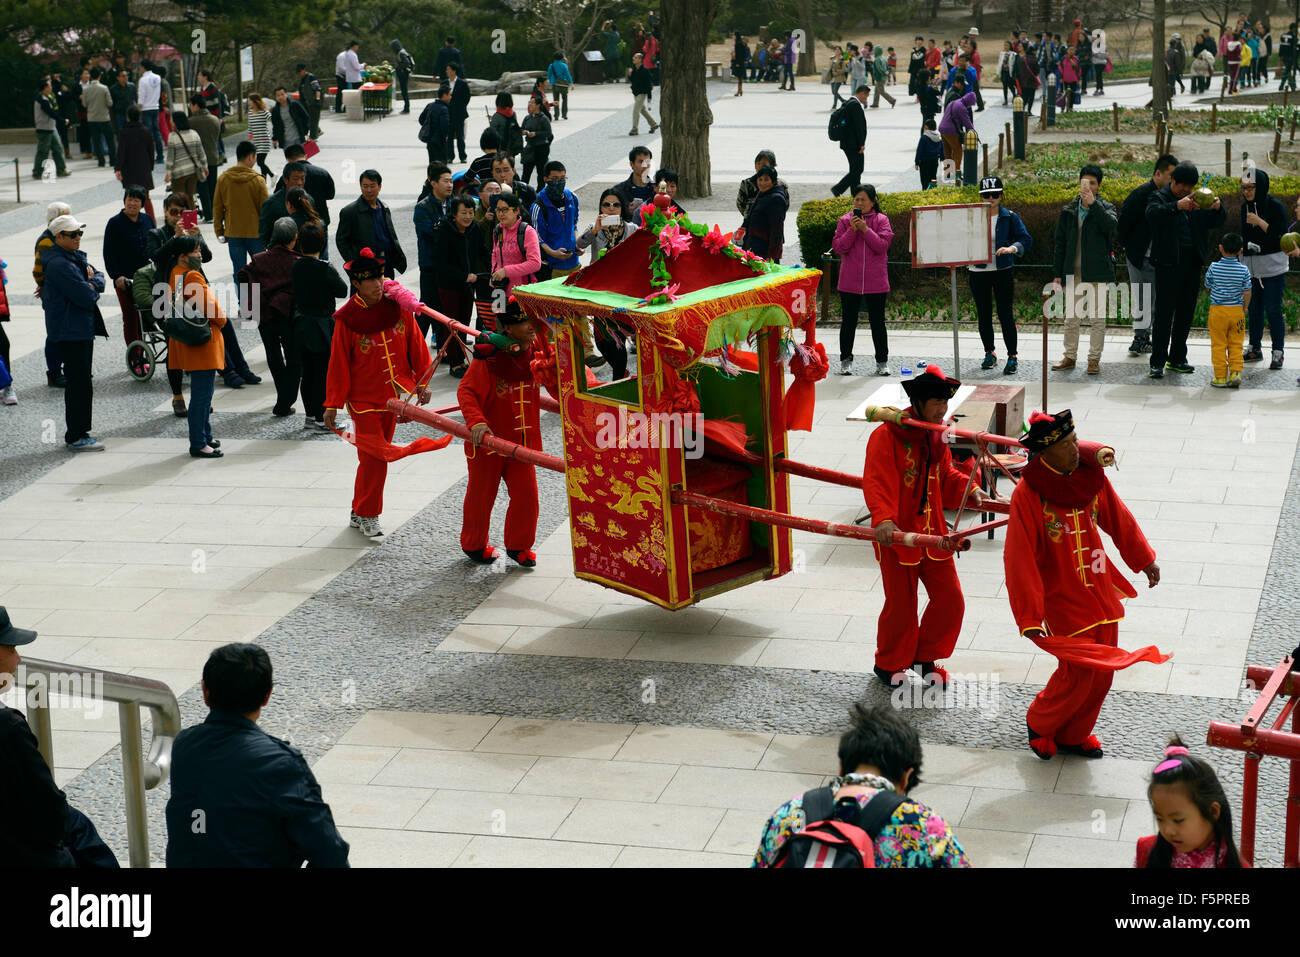 People tourists emperor carriage ride pretend Beijing Botanical Garden RM Floral - Stock Image